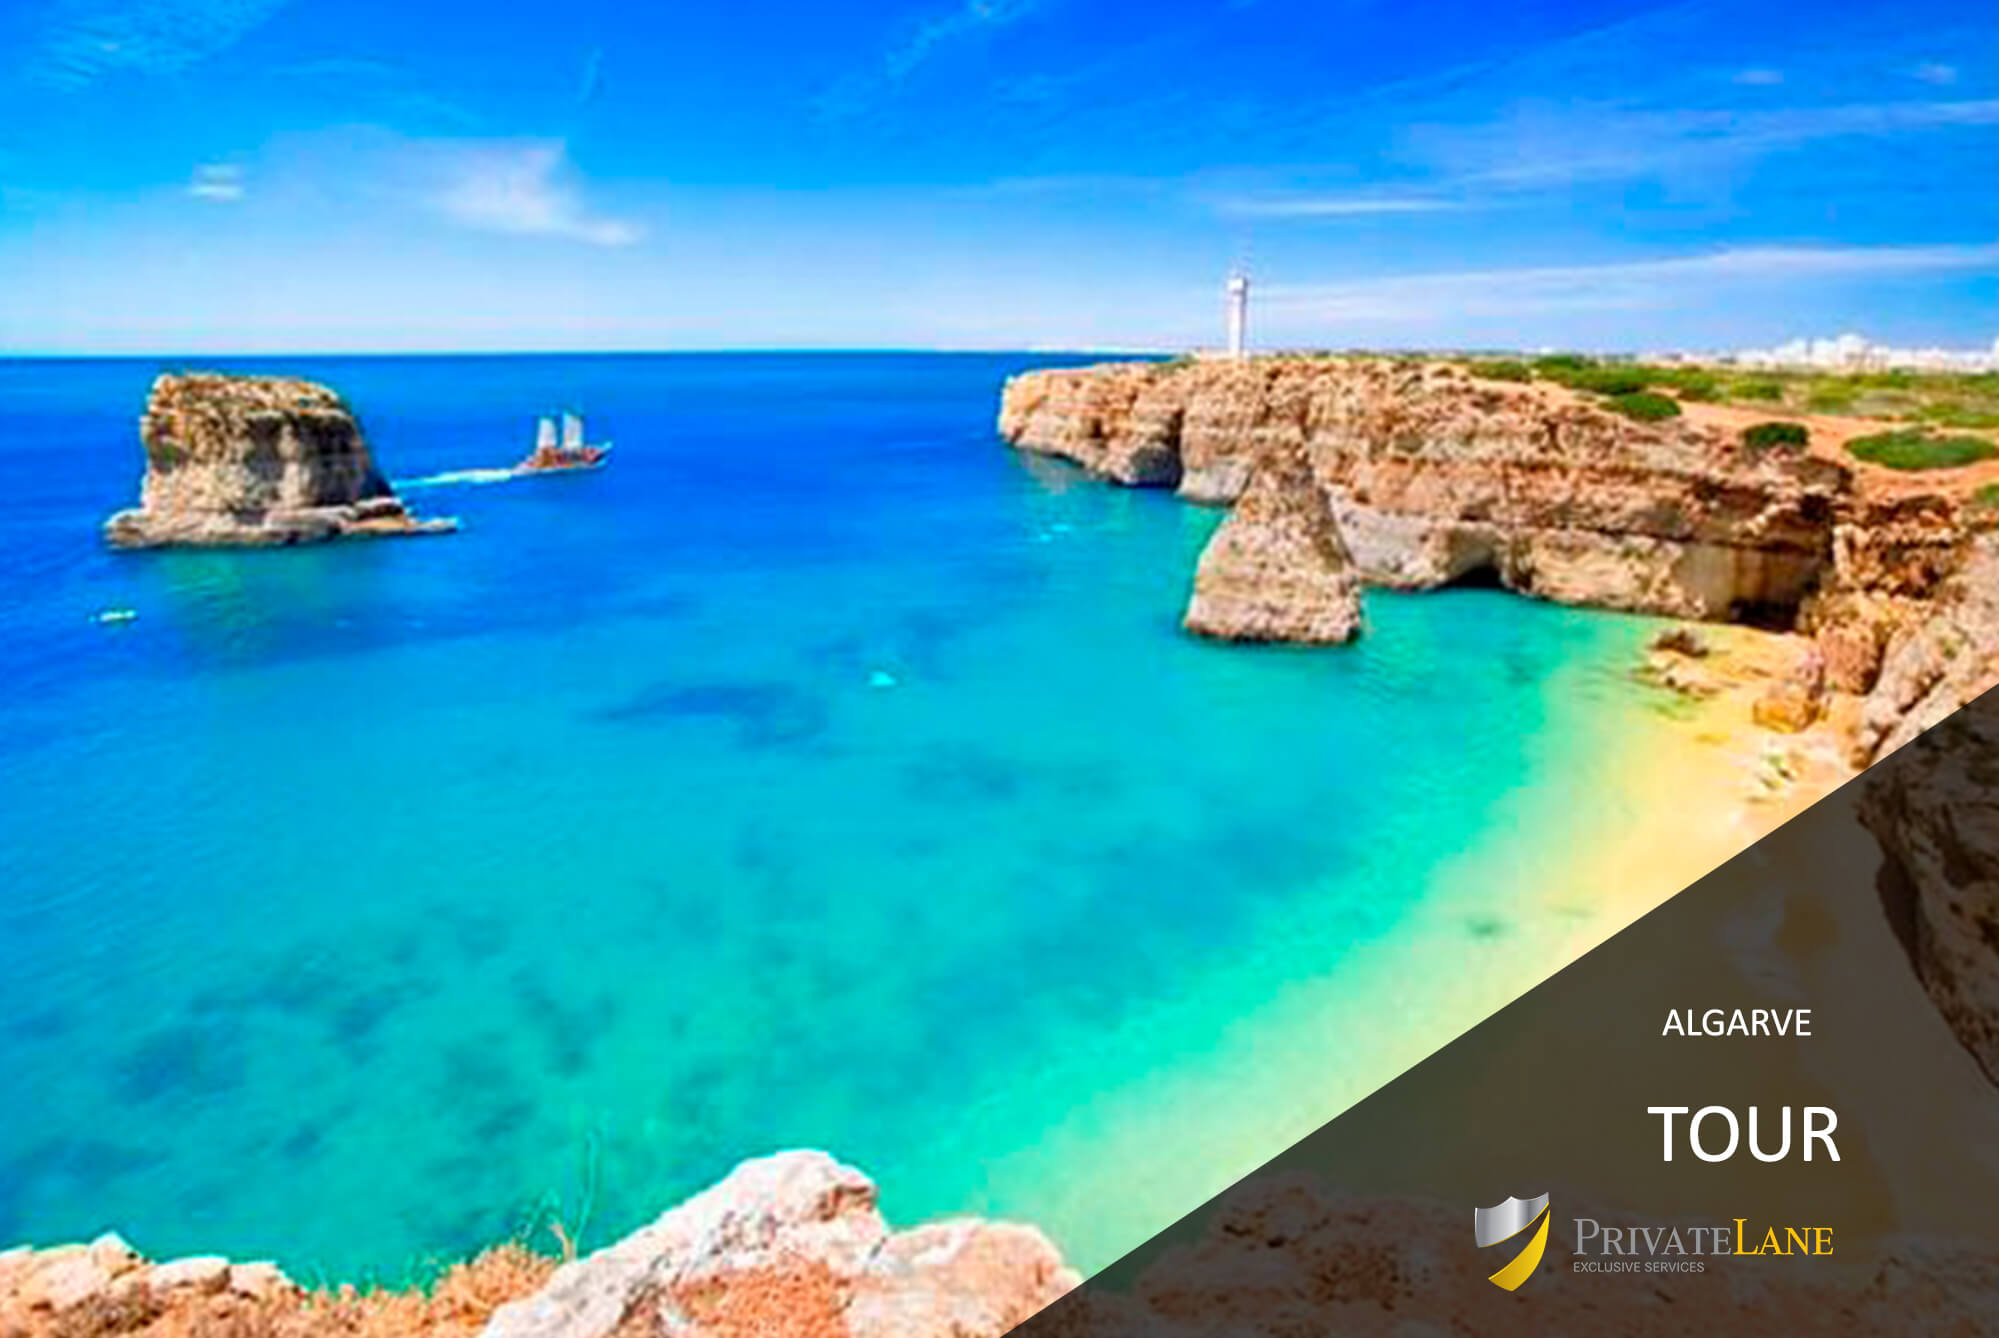 Algarve Tour